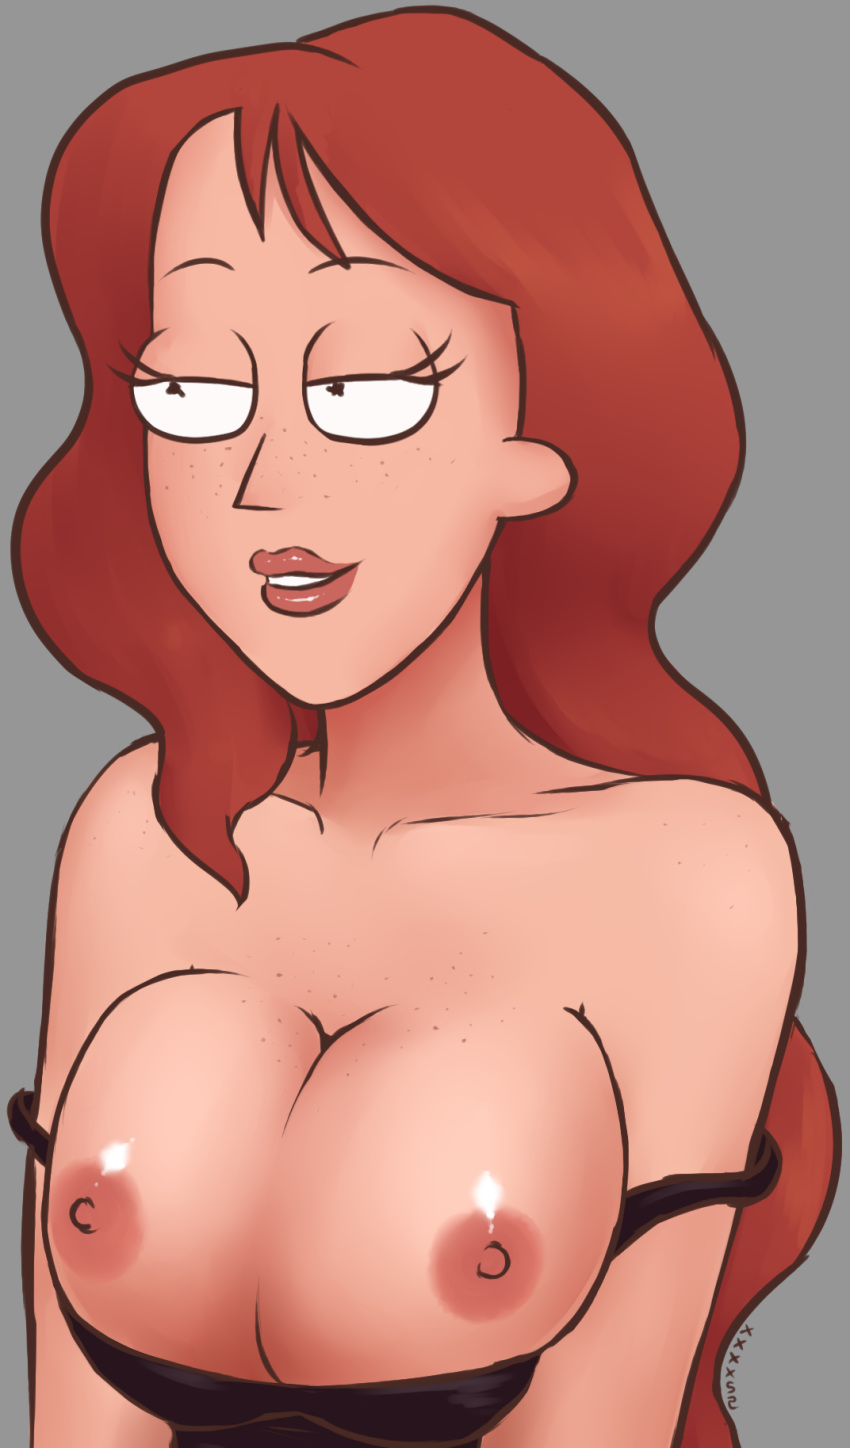 summer morty and sexy rick naked Friday the 13th game